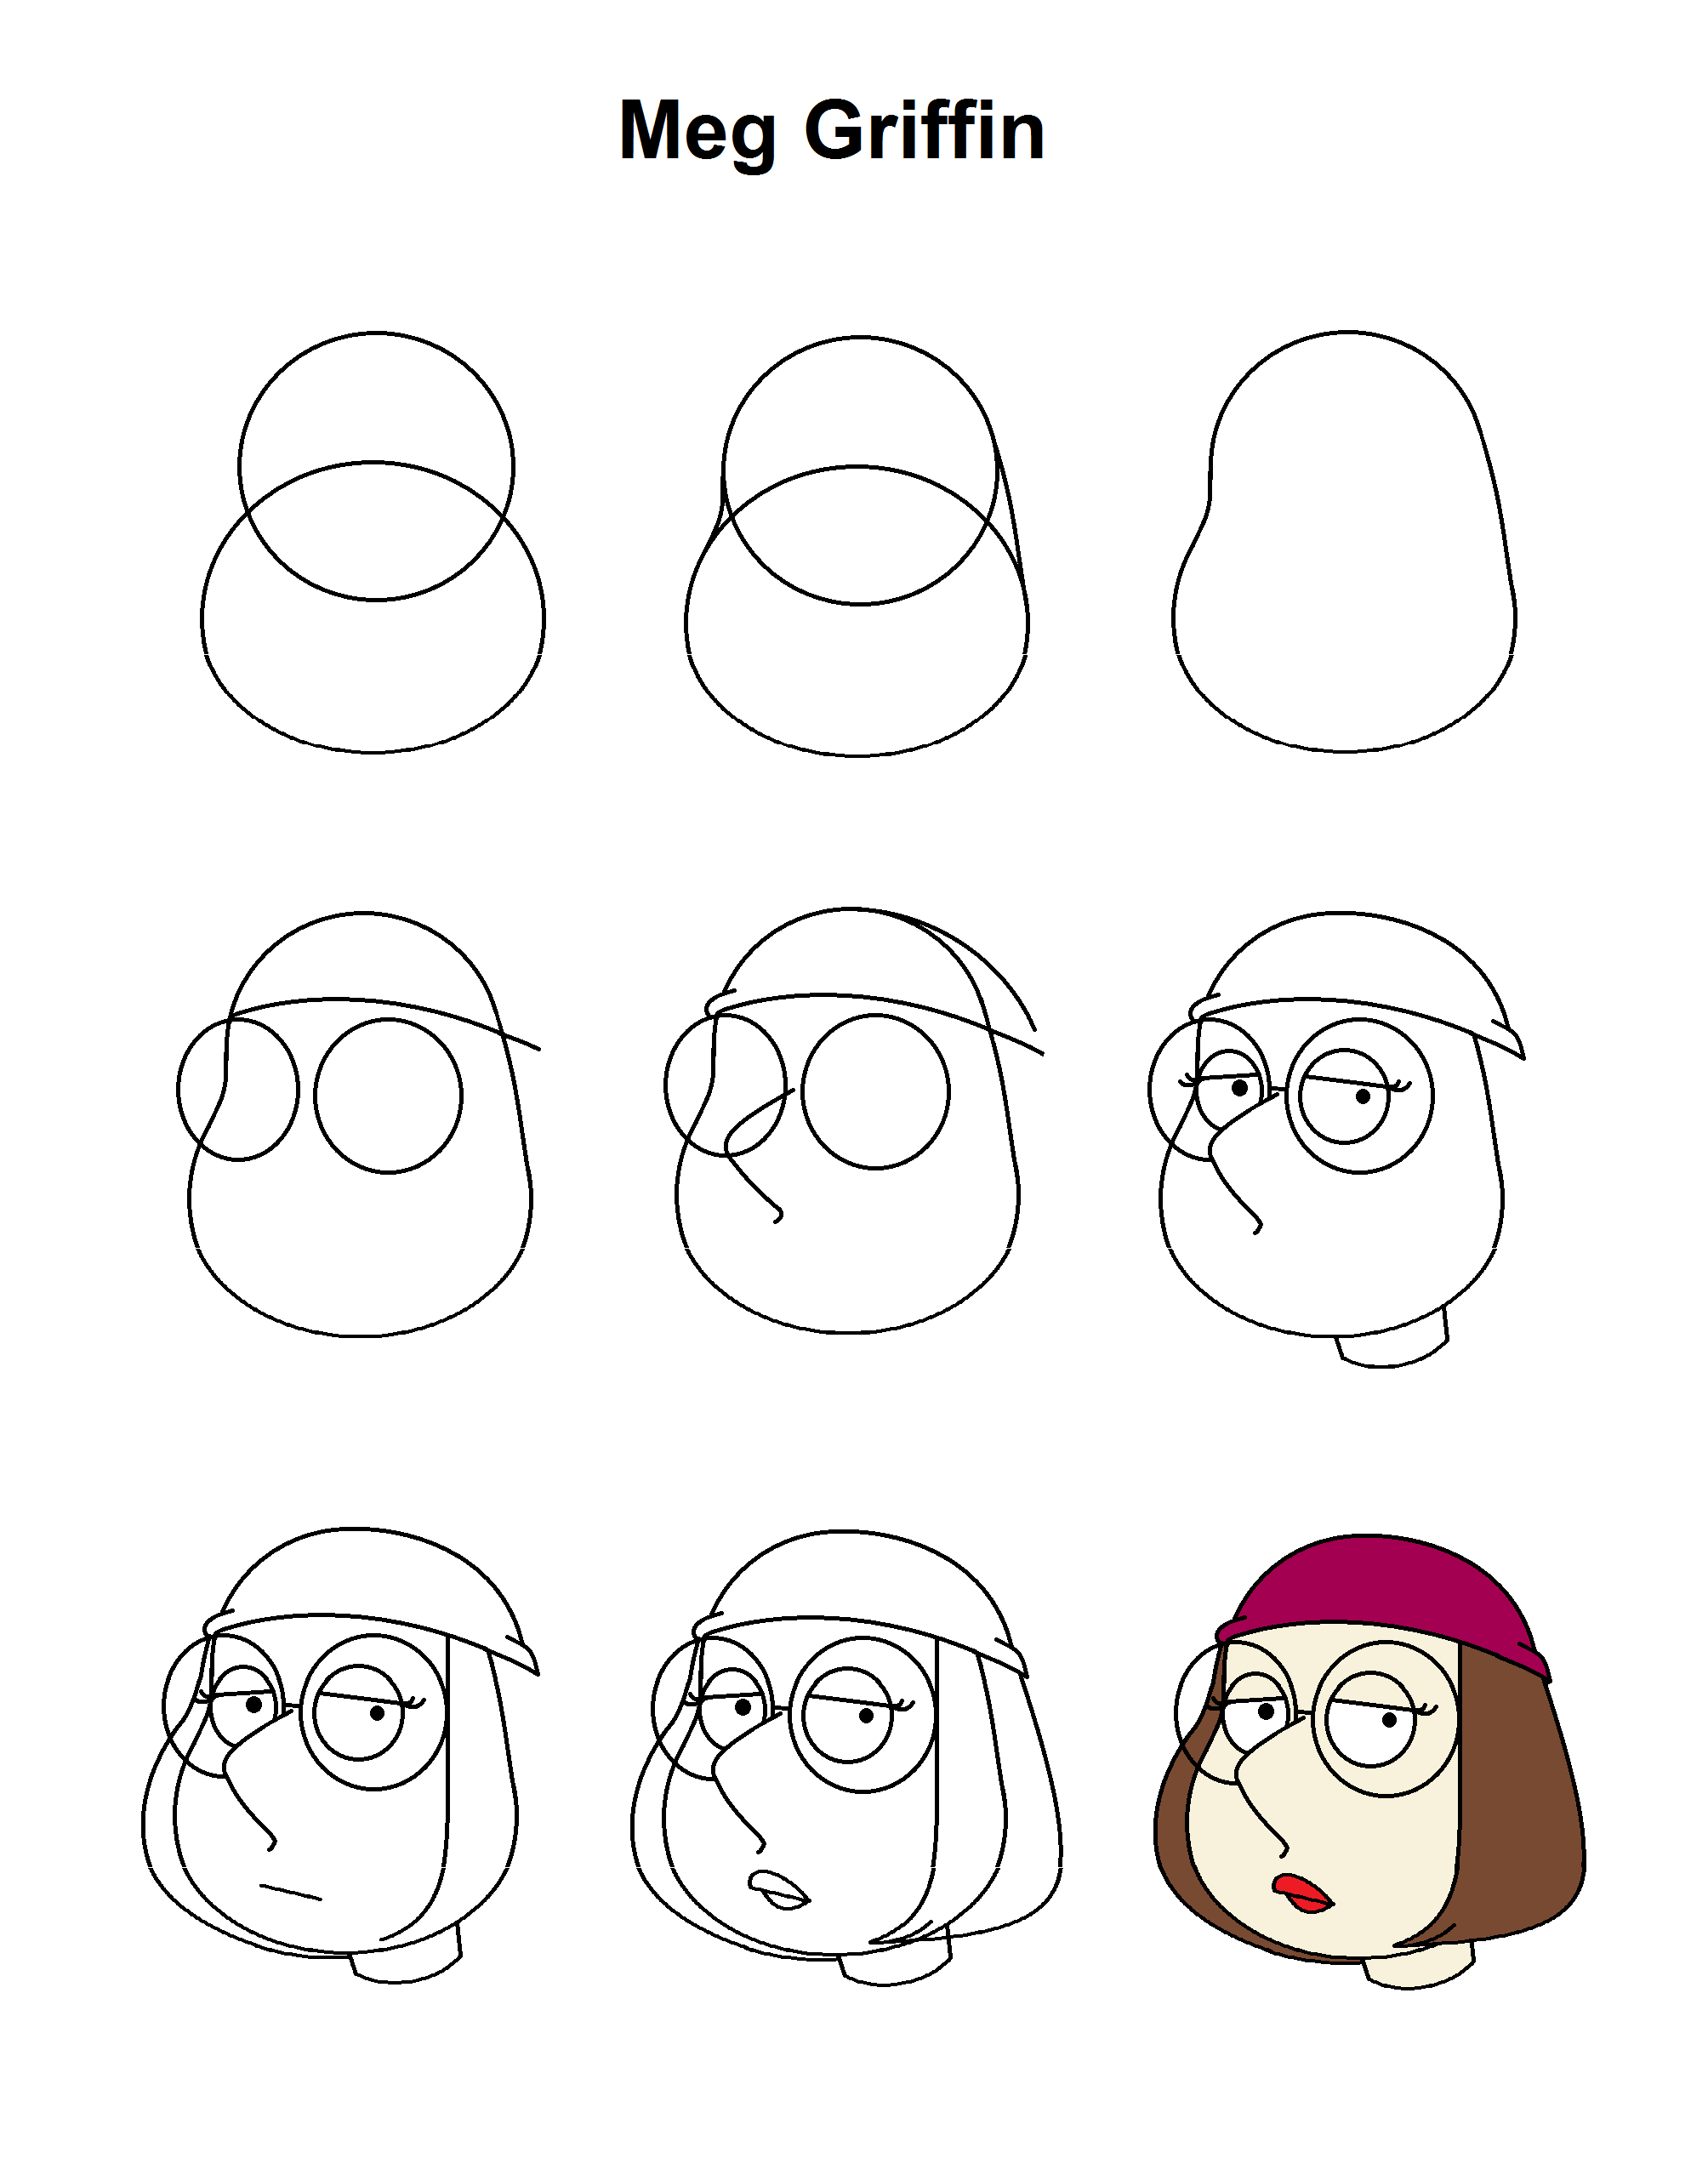 Meg Griffin Step By Step Tutorial Drawing Tutorial Cute Easy Drawings Cartoon Drawing Tutorial